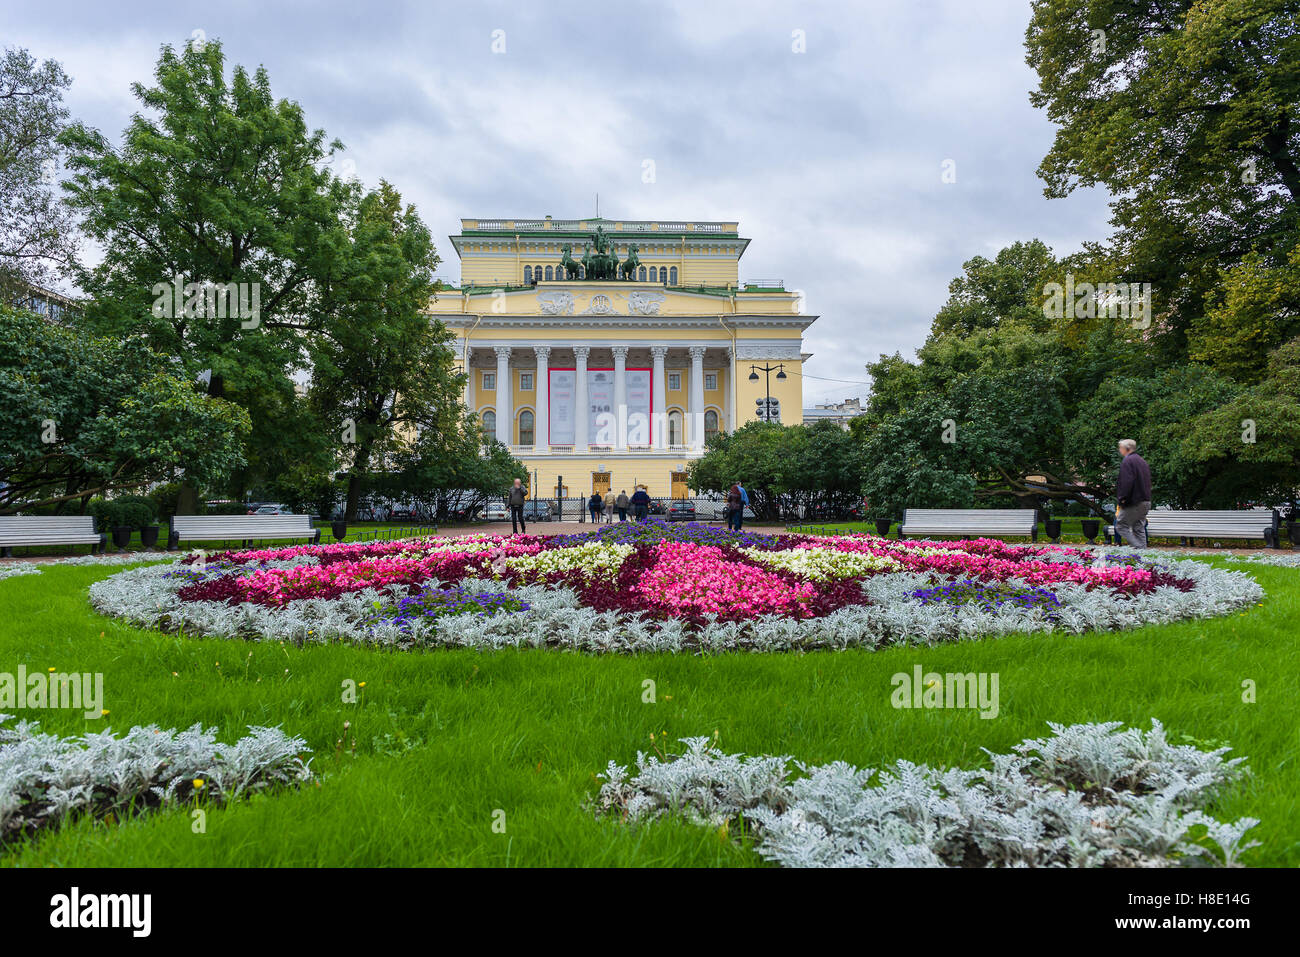 Alexandrinsky Theater also known as Russian State Pushkin Academy Drama Theater - Stock Image